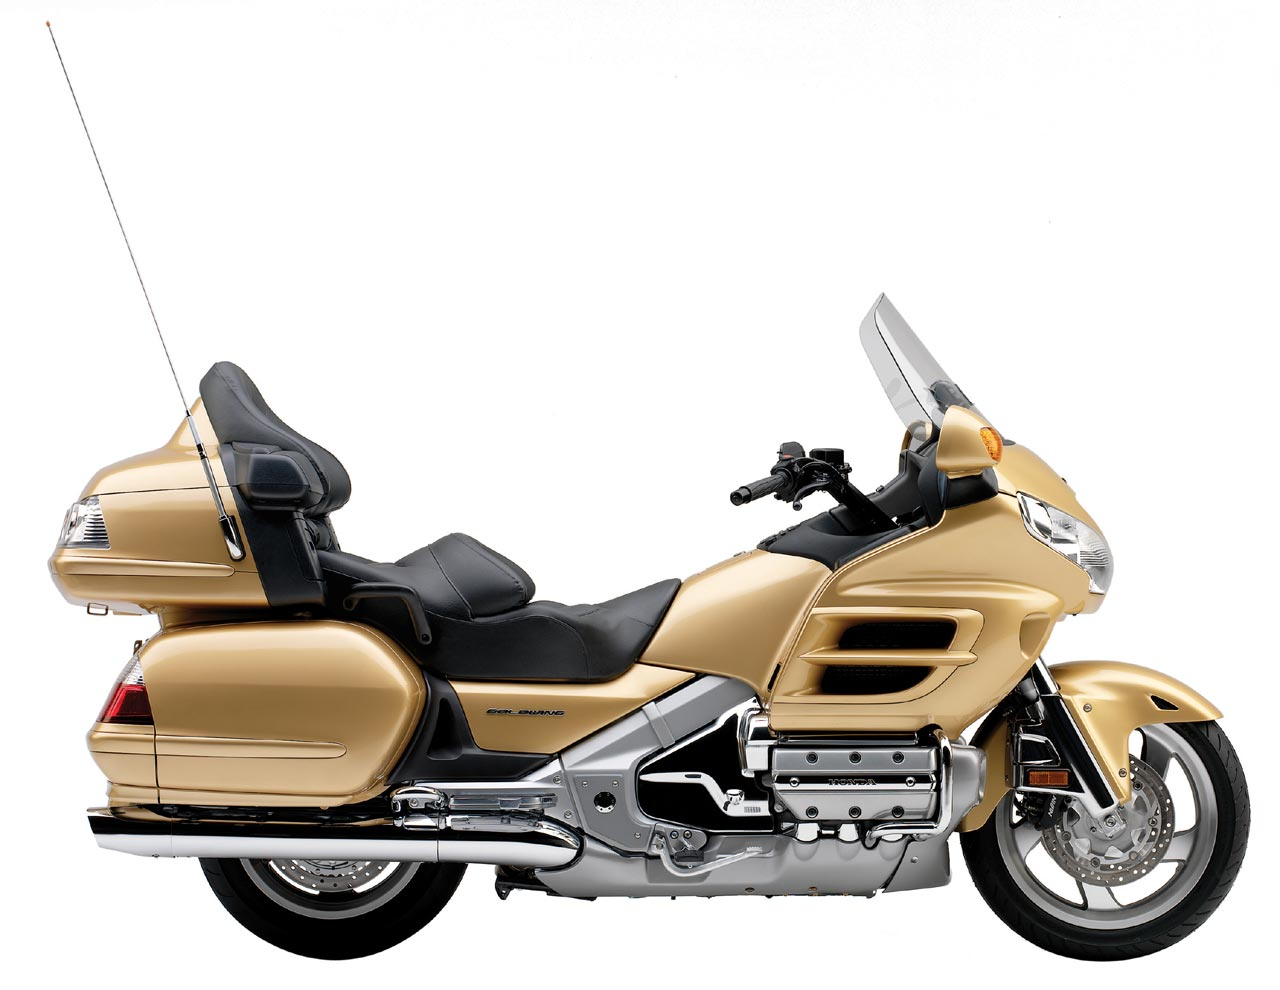 total motorcycle website 2006 honda gold wing rh totalmotorcycle com 2006 honda goldwing gl1800 service manual 2006 honda goldwing gl1800 service manual pdf